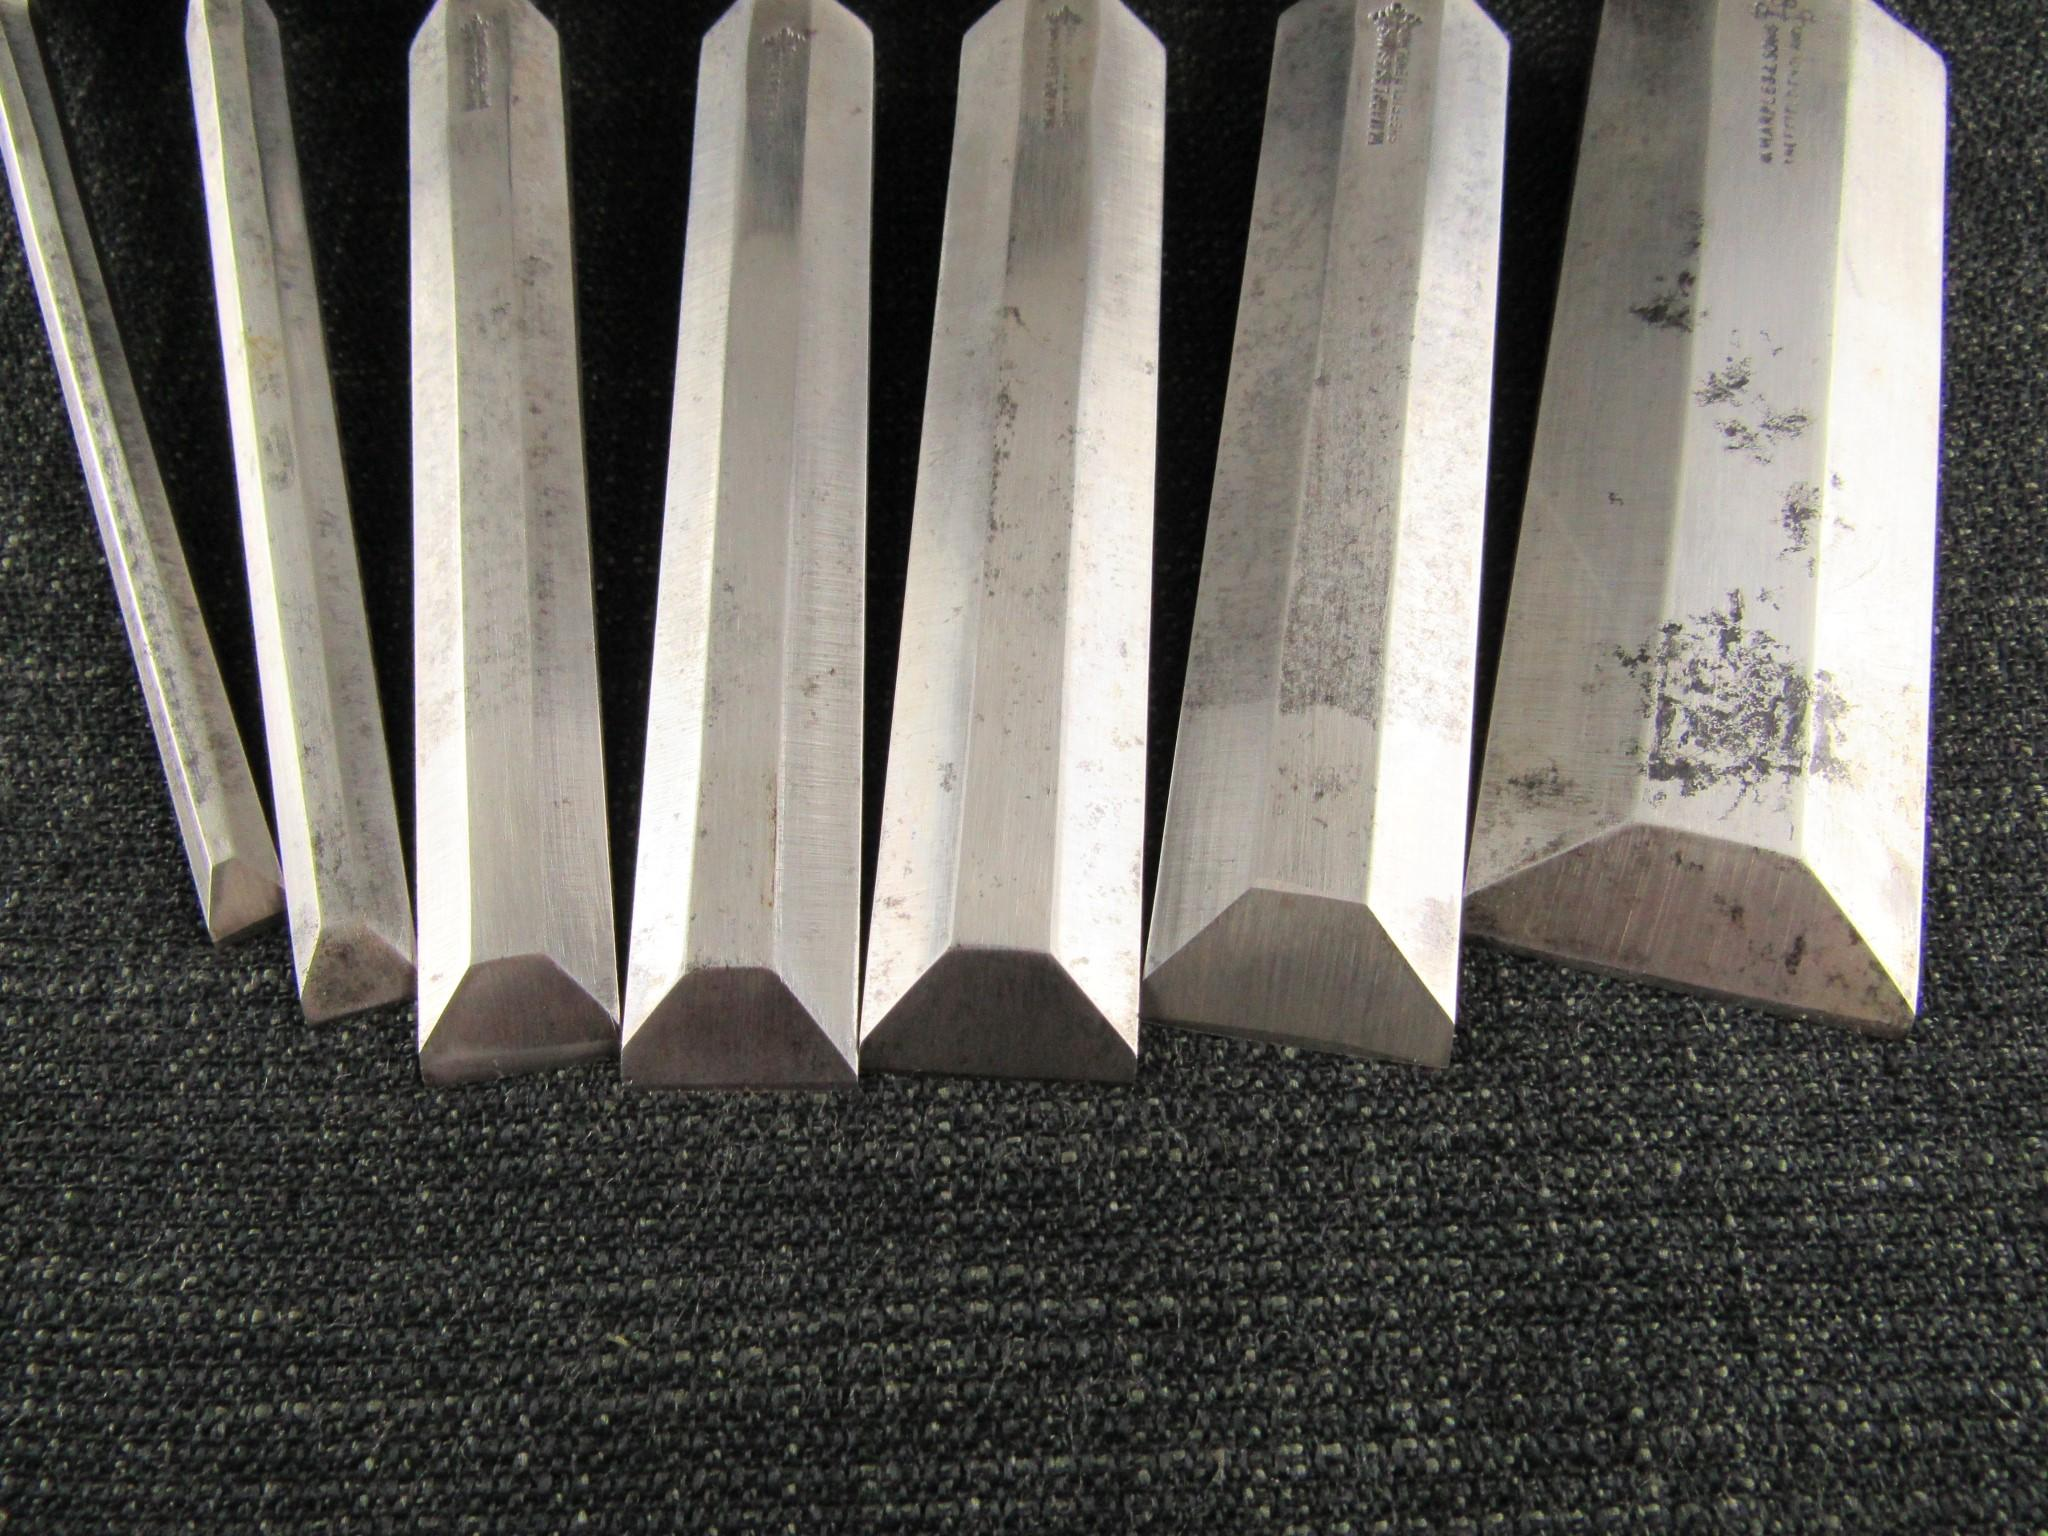 Graduated Set of 7 MARPLES Bevel Edge Socket Cabinet Chisels